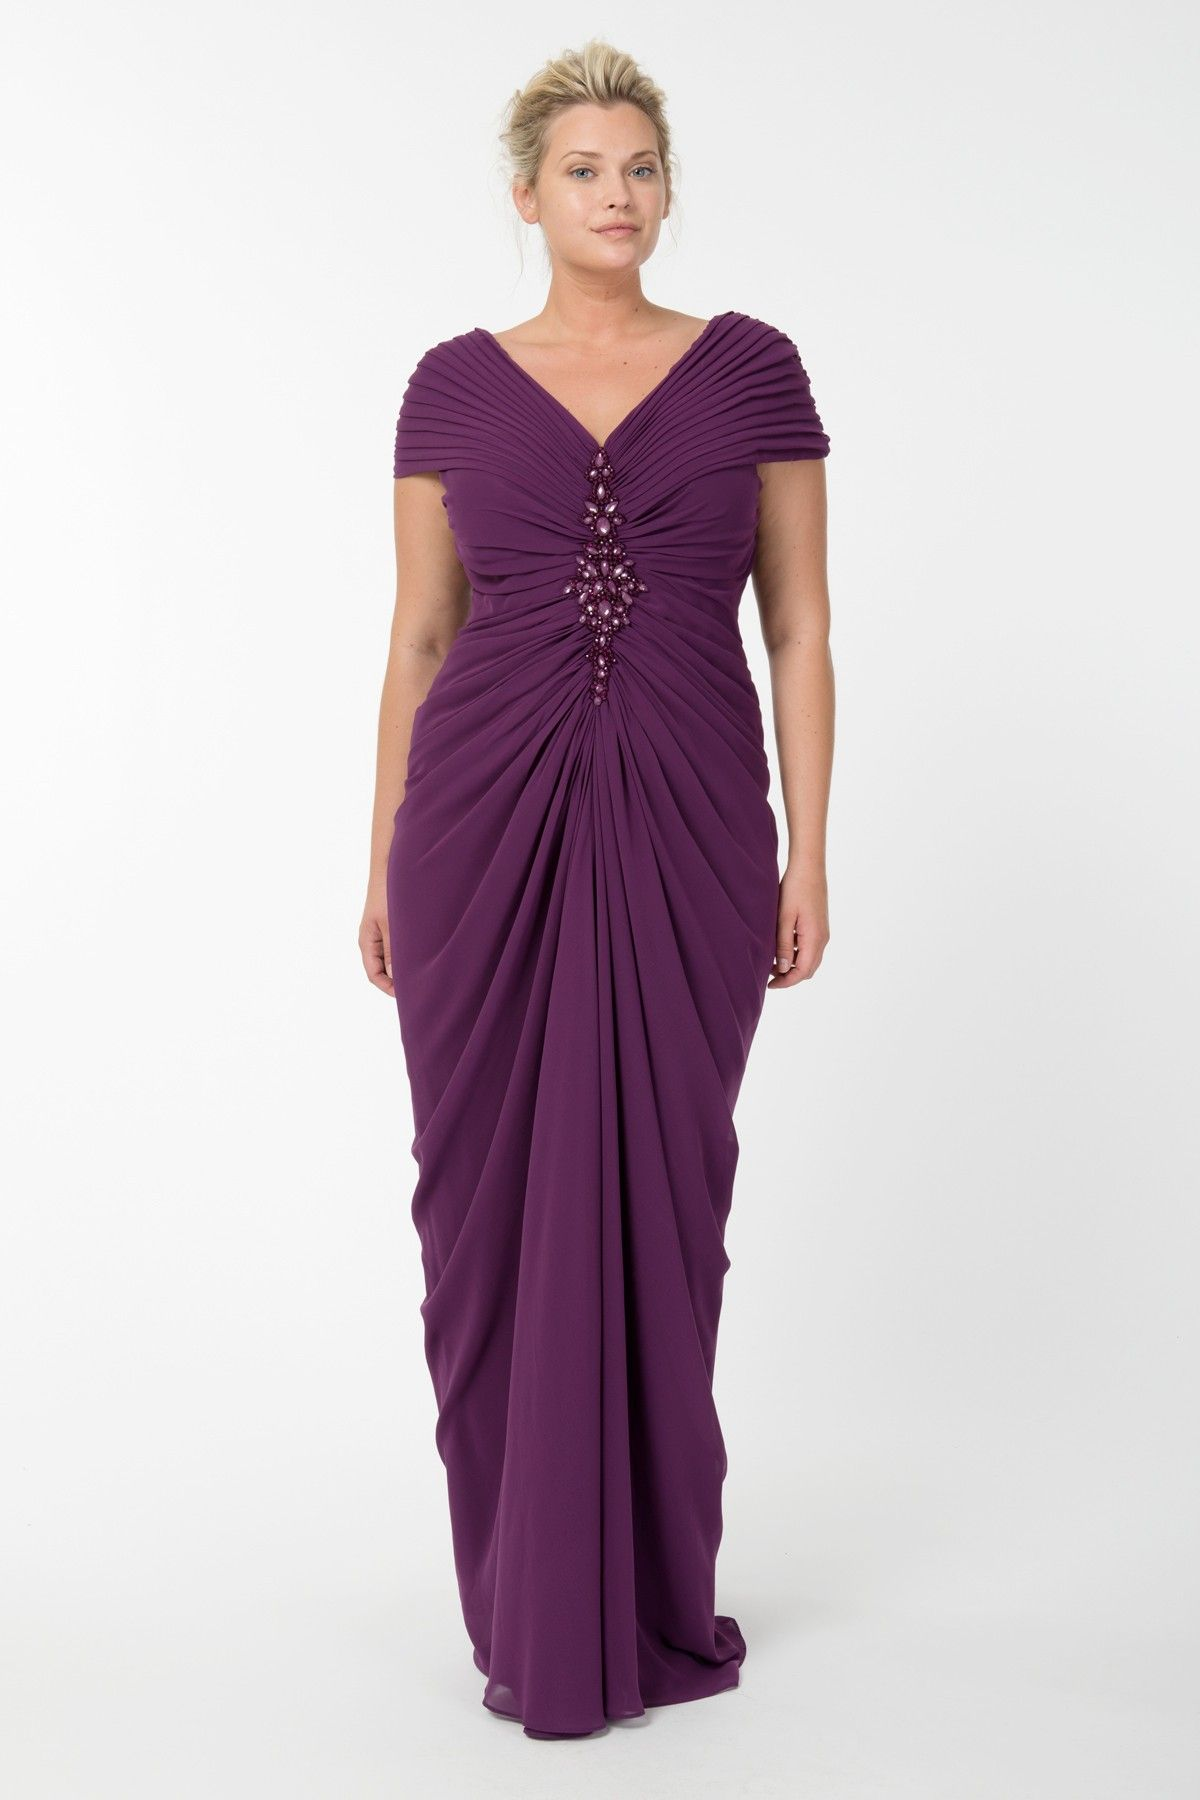 Chiffon Draped V-Neck Gown in Barberry - Evening Gowns - Plus Size ...